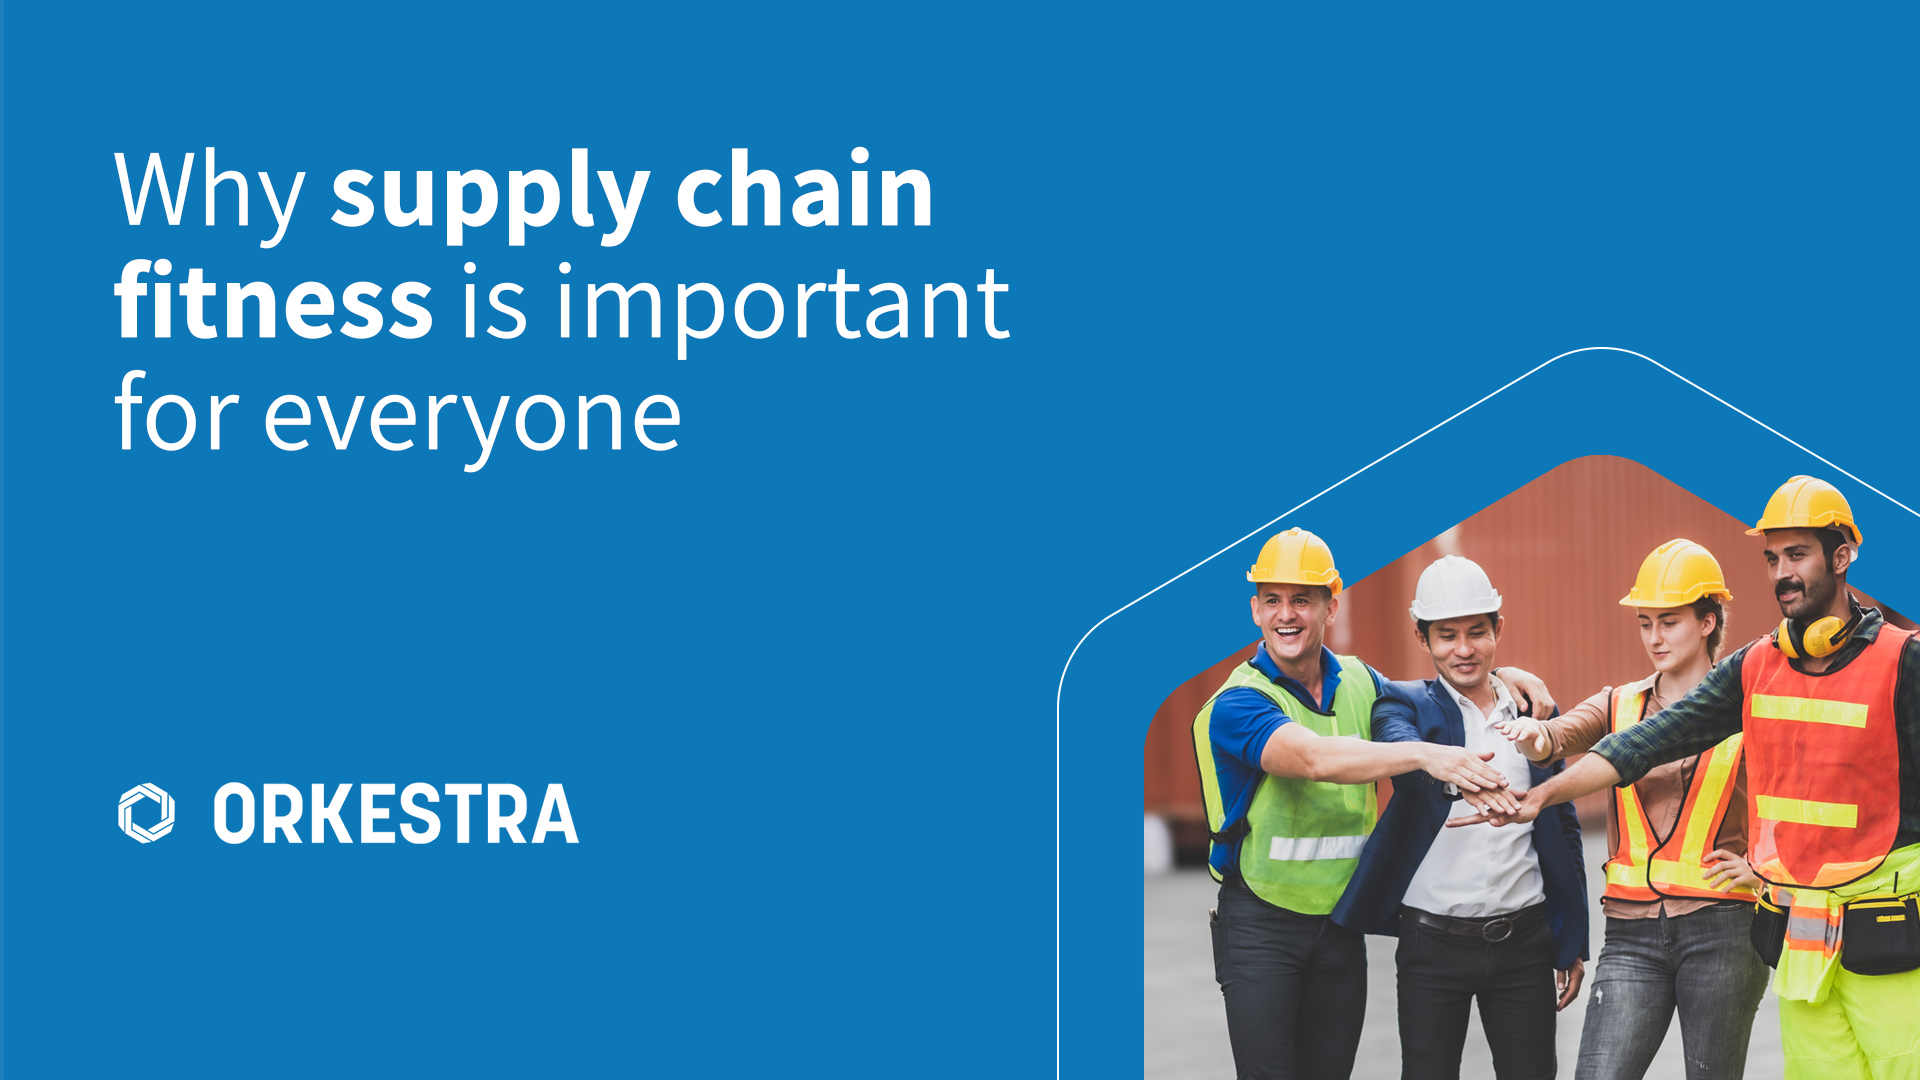 Understand why every business should be focusing on supply chain fitness as their goal.